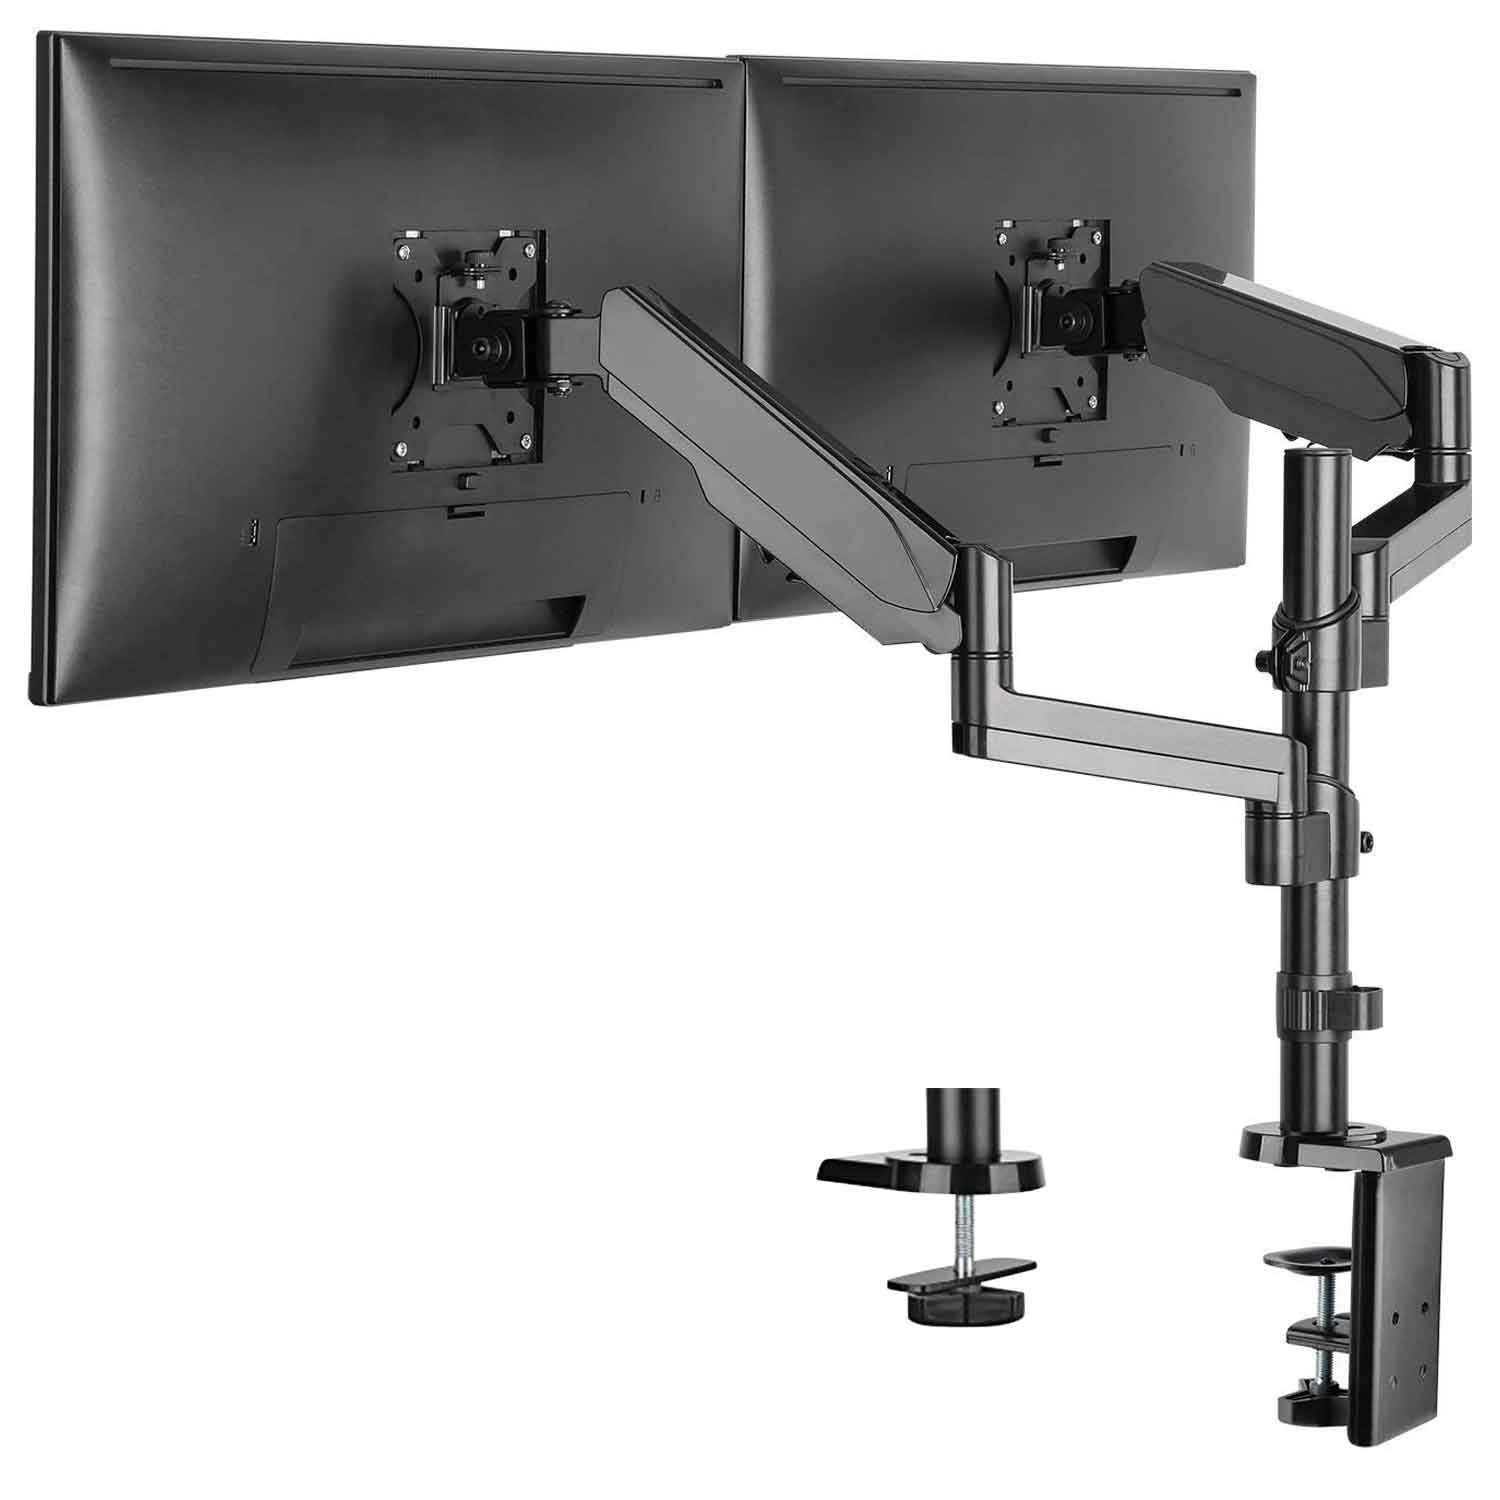 WALI Premium Dual LCD Monitor Desk Mount Fully Adjustable Gas Spring Stand for Display up to 32 inch, 17.6 lbs Capacity (GSDM002), Black by WALI